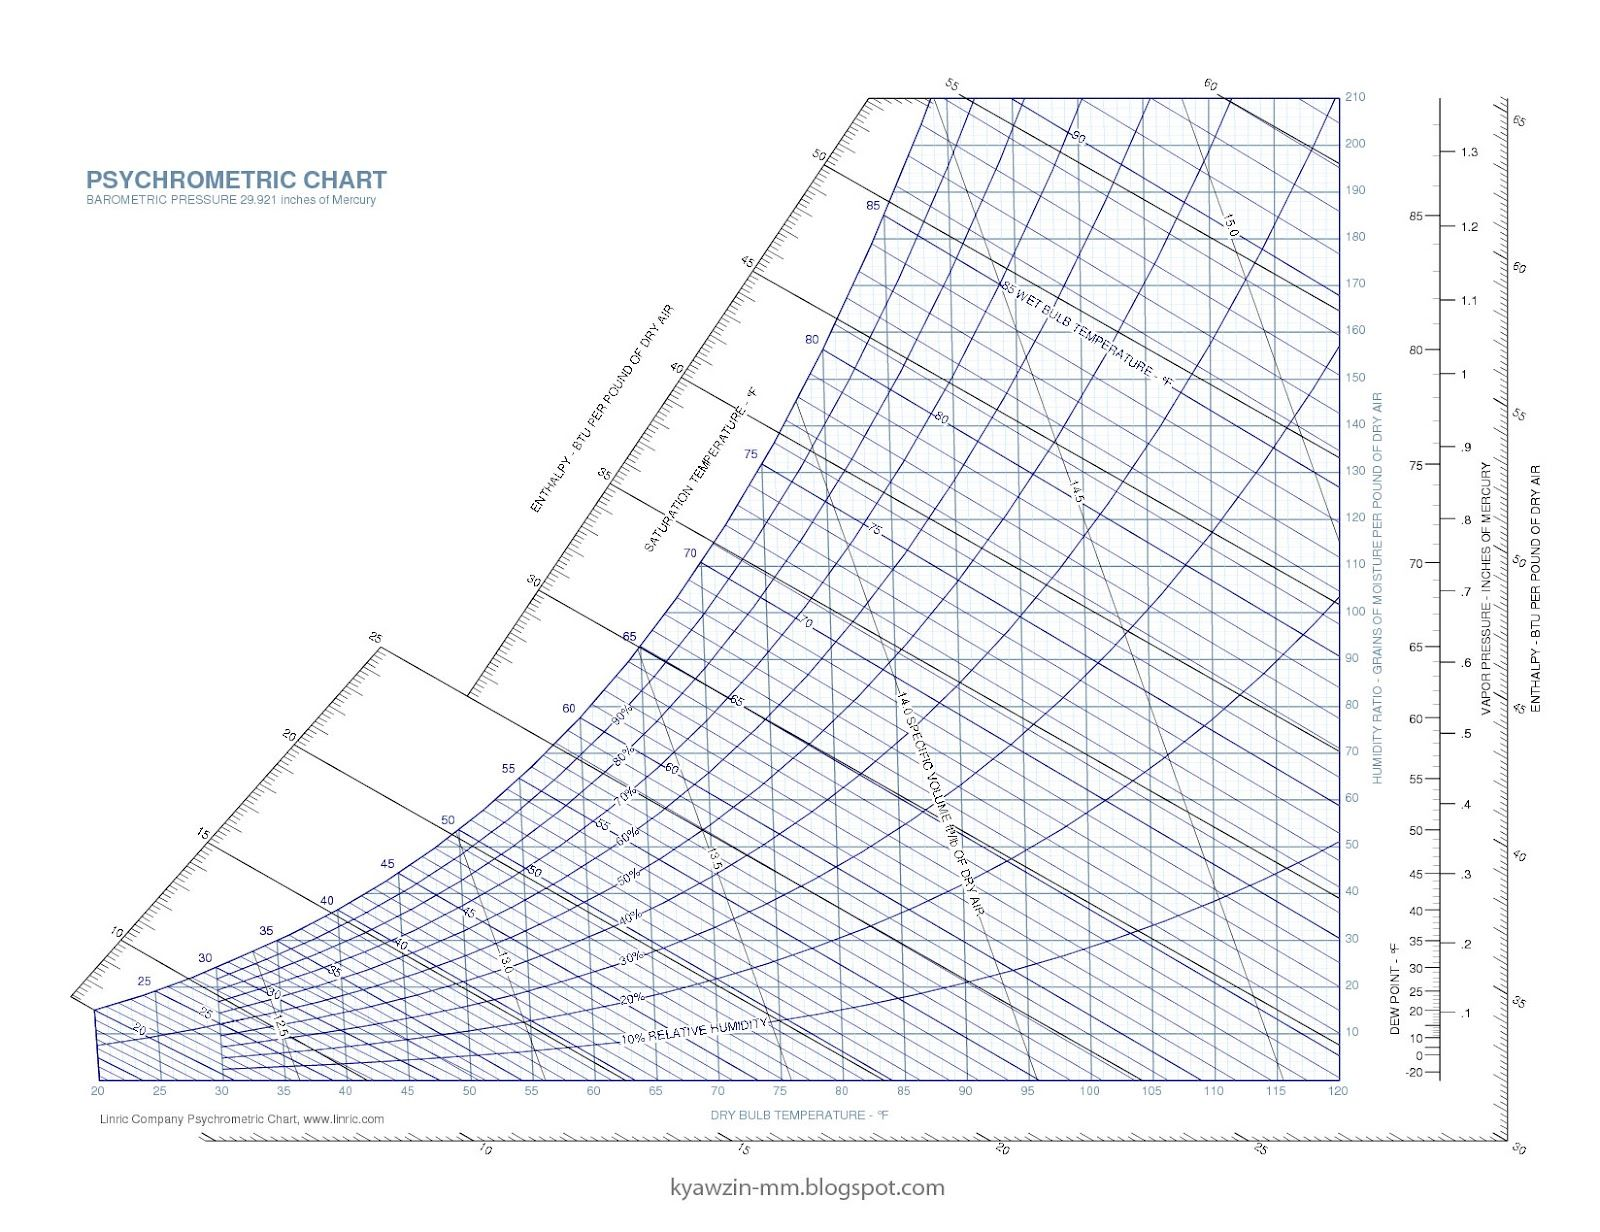 picture about Printable Psychrometric Chart referred to as Psychrometric Chart PDF งานสอน Chart, Pdf